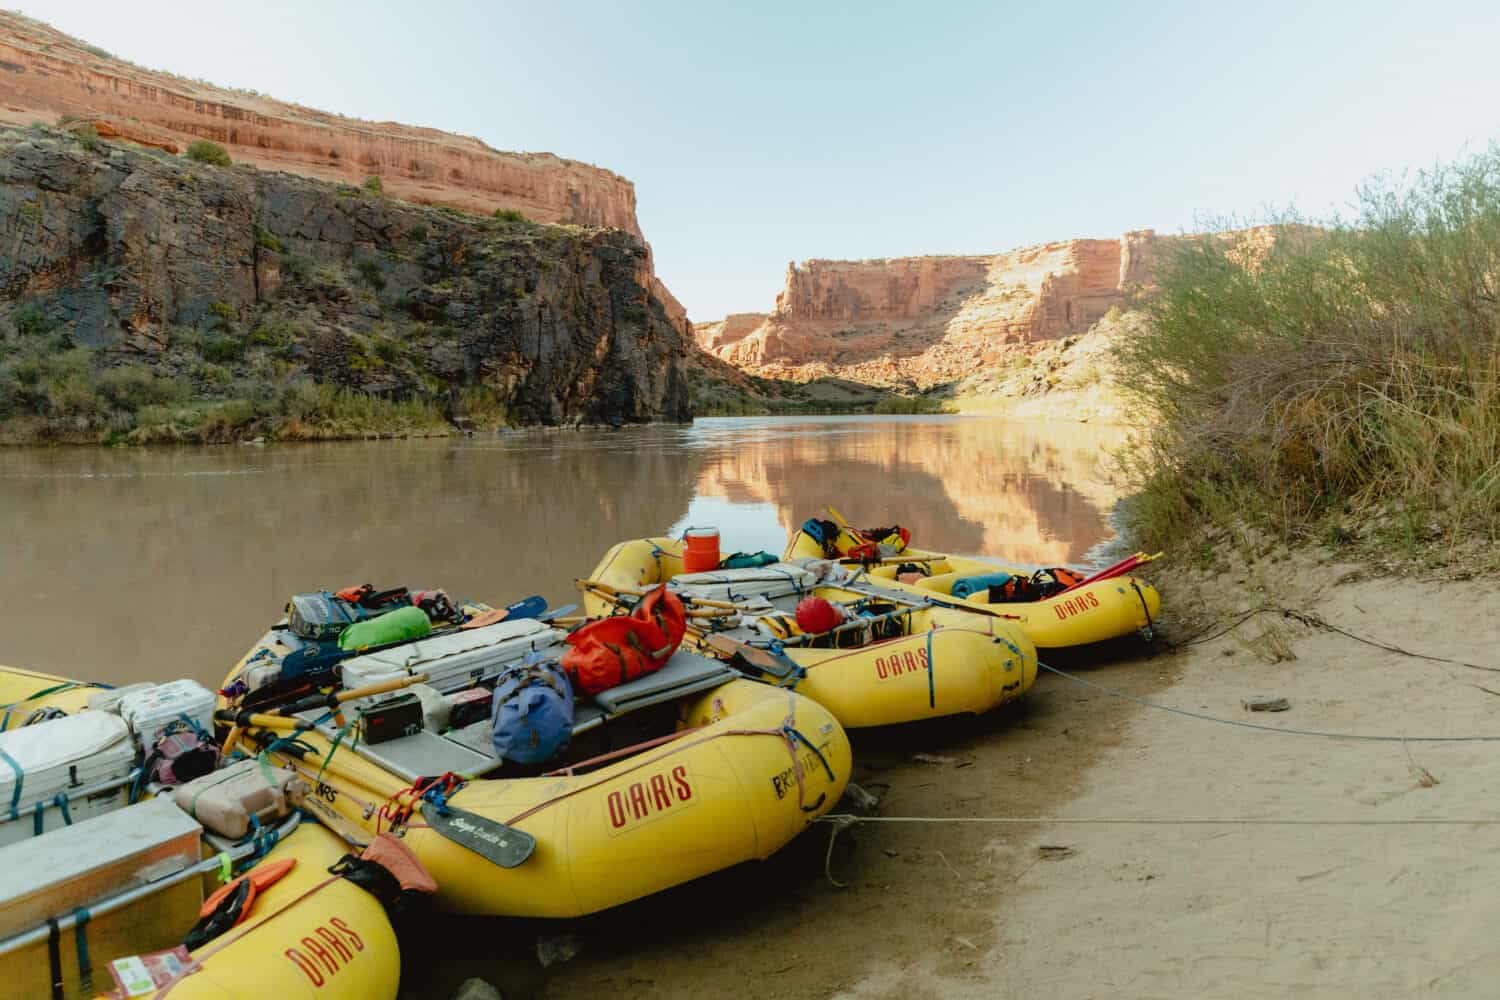 River rafting boats on Westwater Canyon during sunset